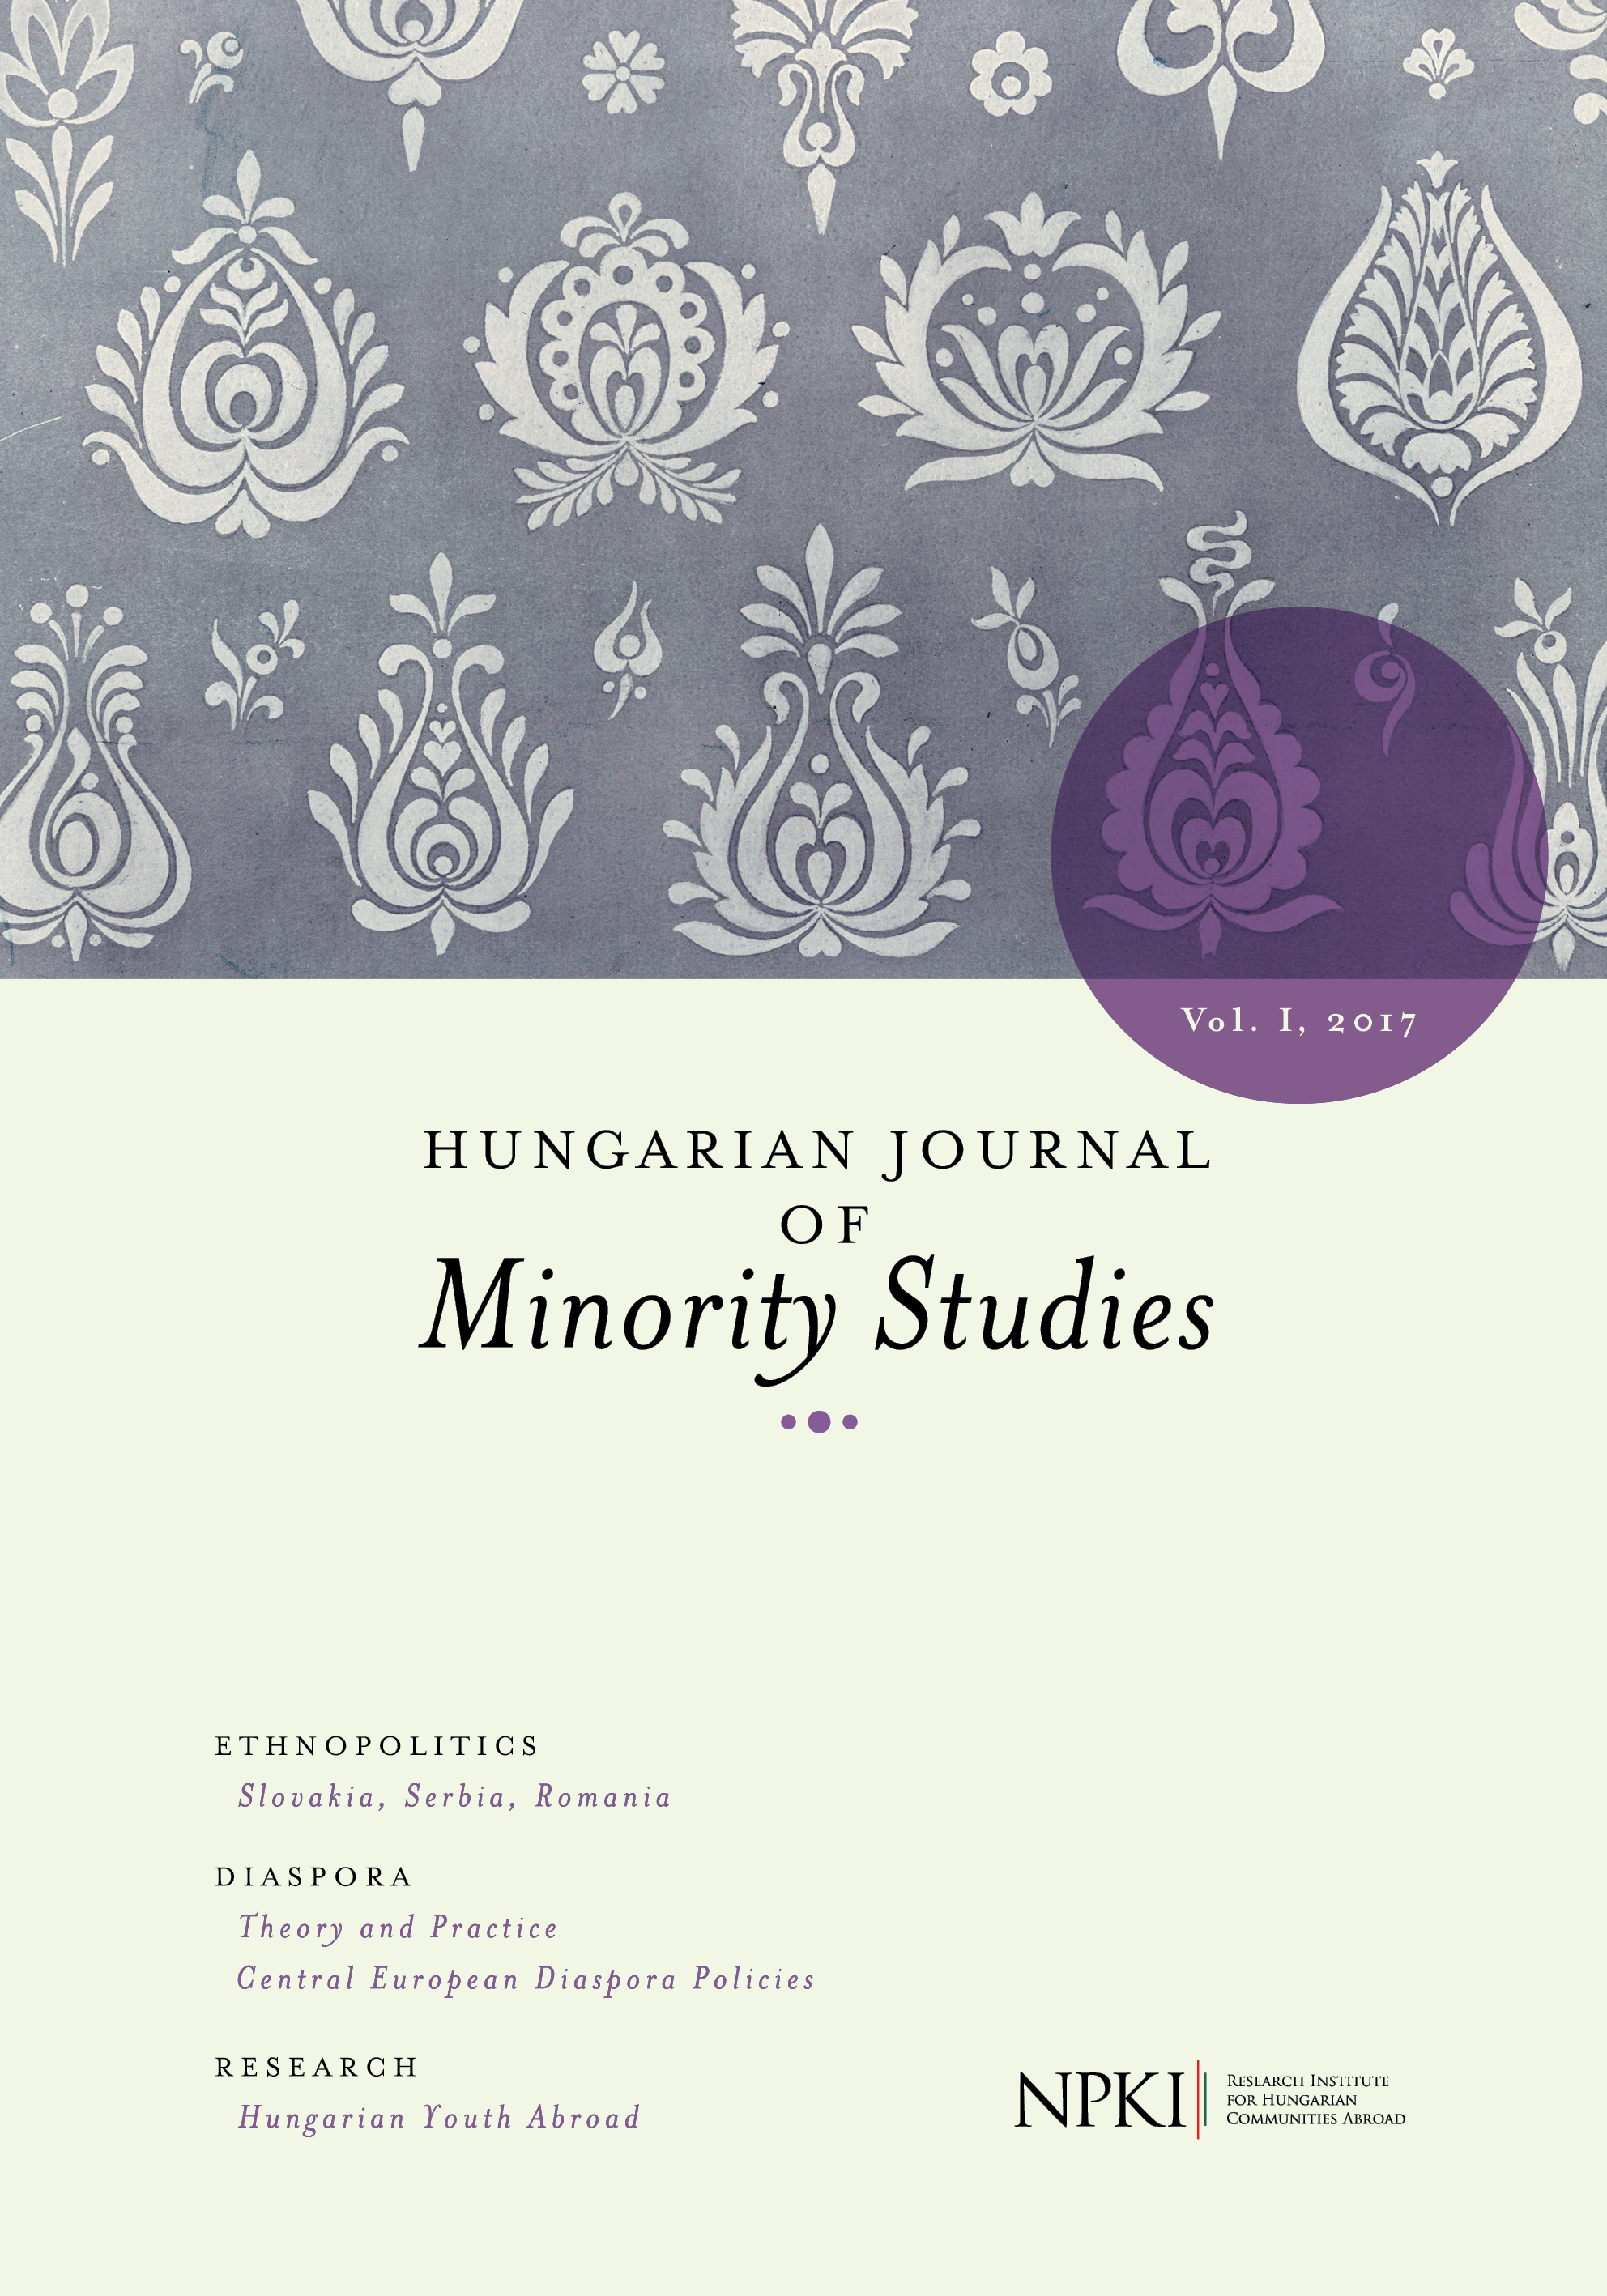 Hungarian Journal of Minority Studies